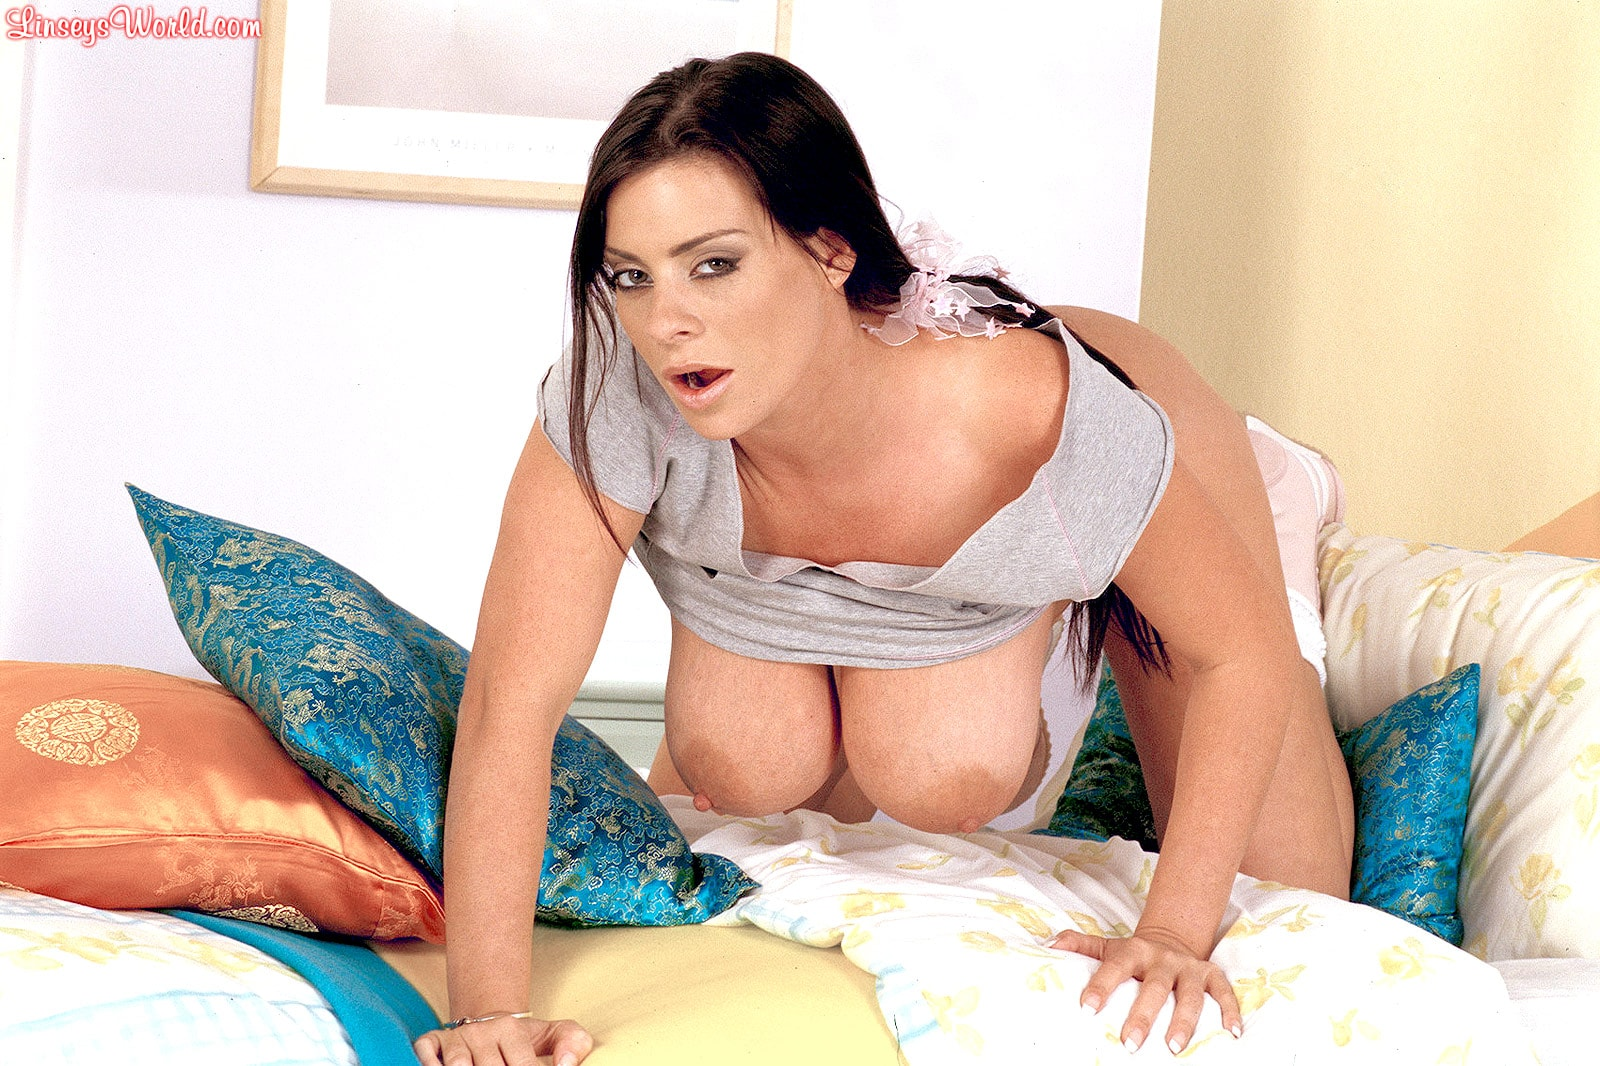 Linsey Dawn McKenzie 'Lets Dance' starring Linsey Dawn McKenzie (Photo 14)